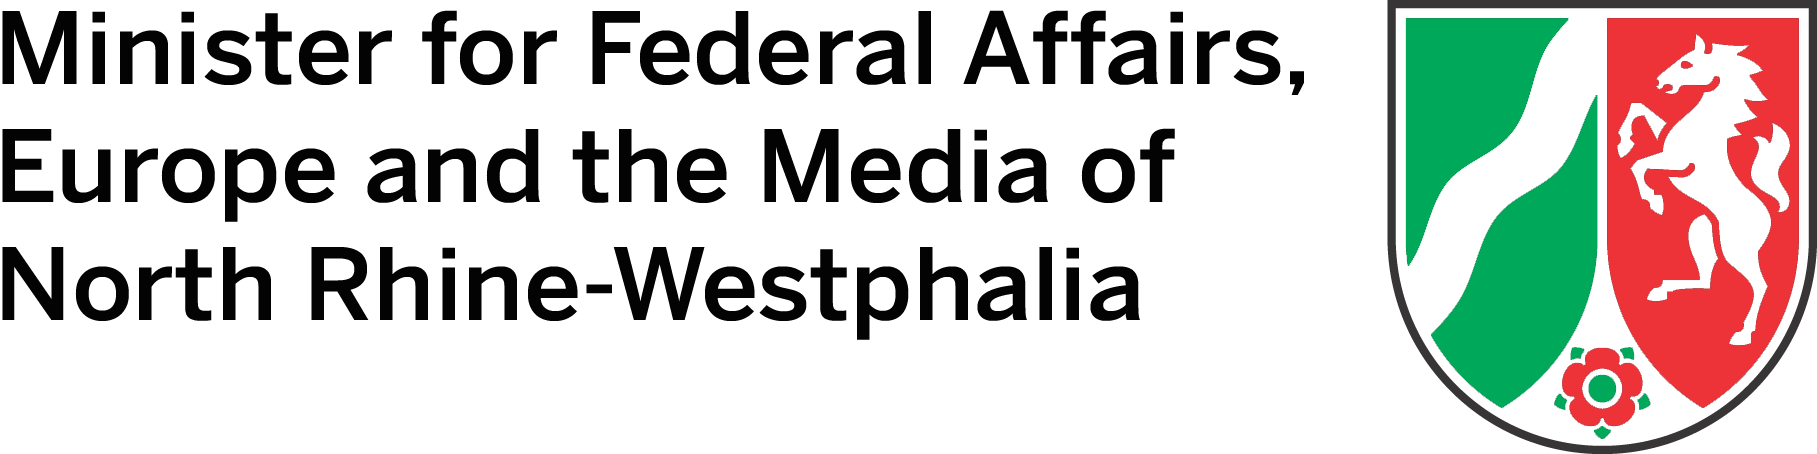 The Minister for Federal Affairs, Europe and the Media of North Rhine-Westphalia